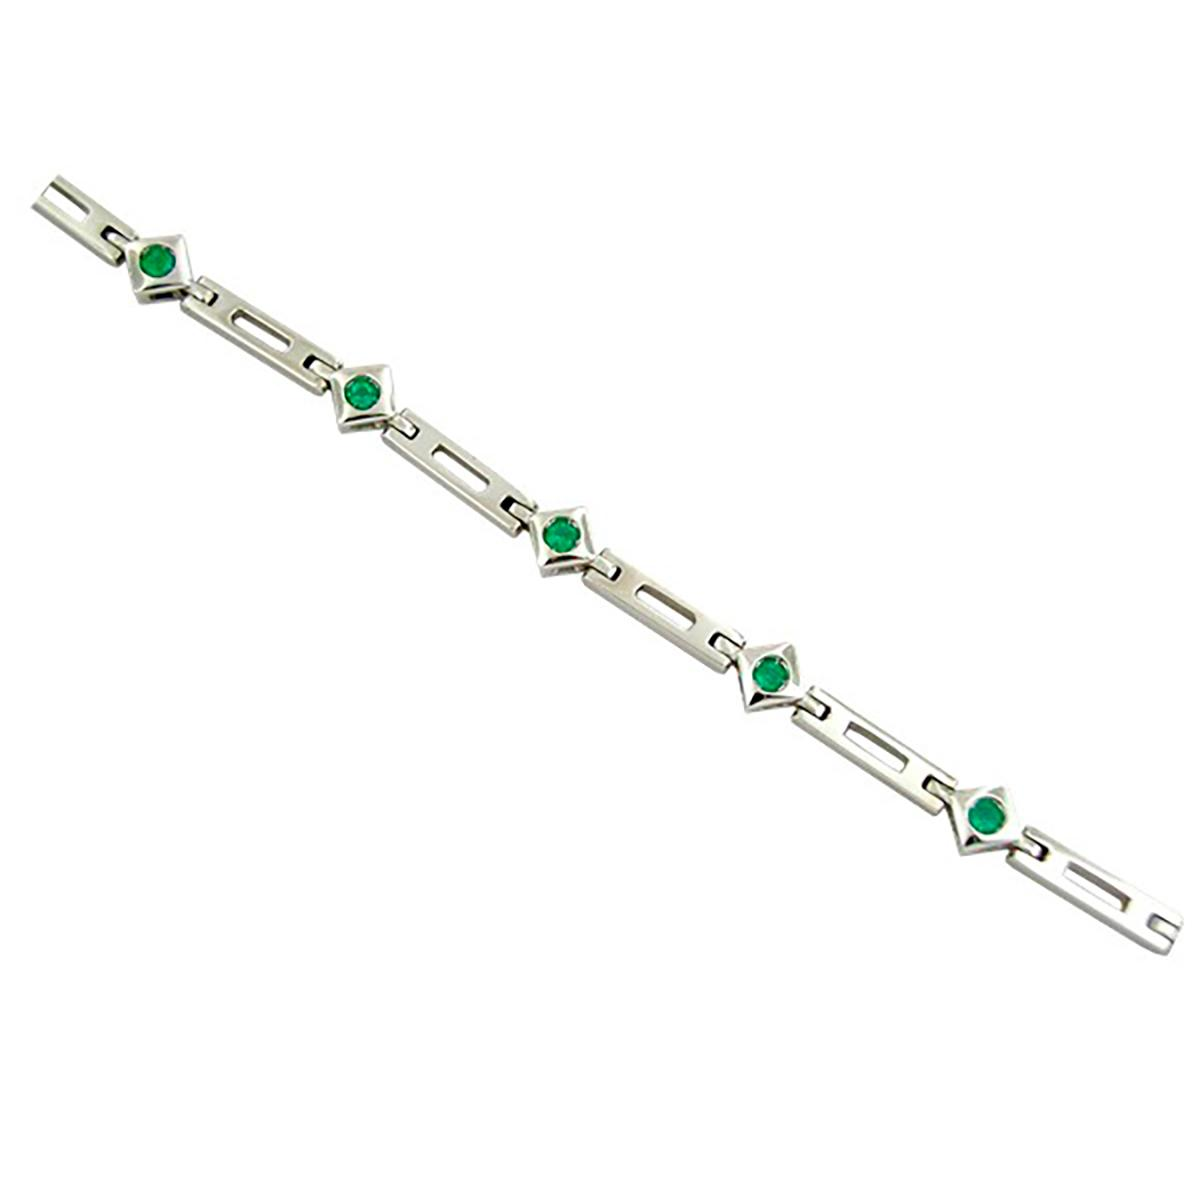 emerald-bracelet-in-18k-white-gold-with-9-round-cut-natural-emeralds